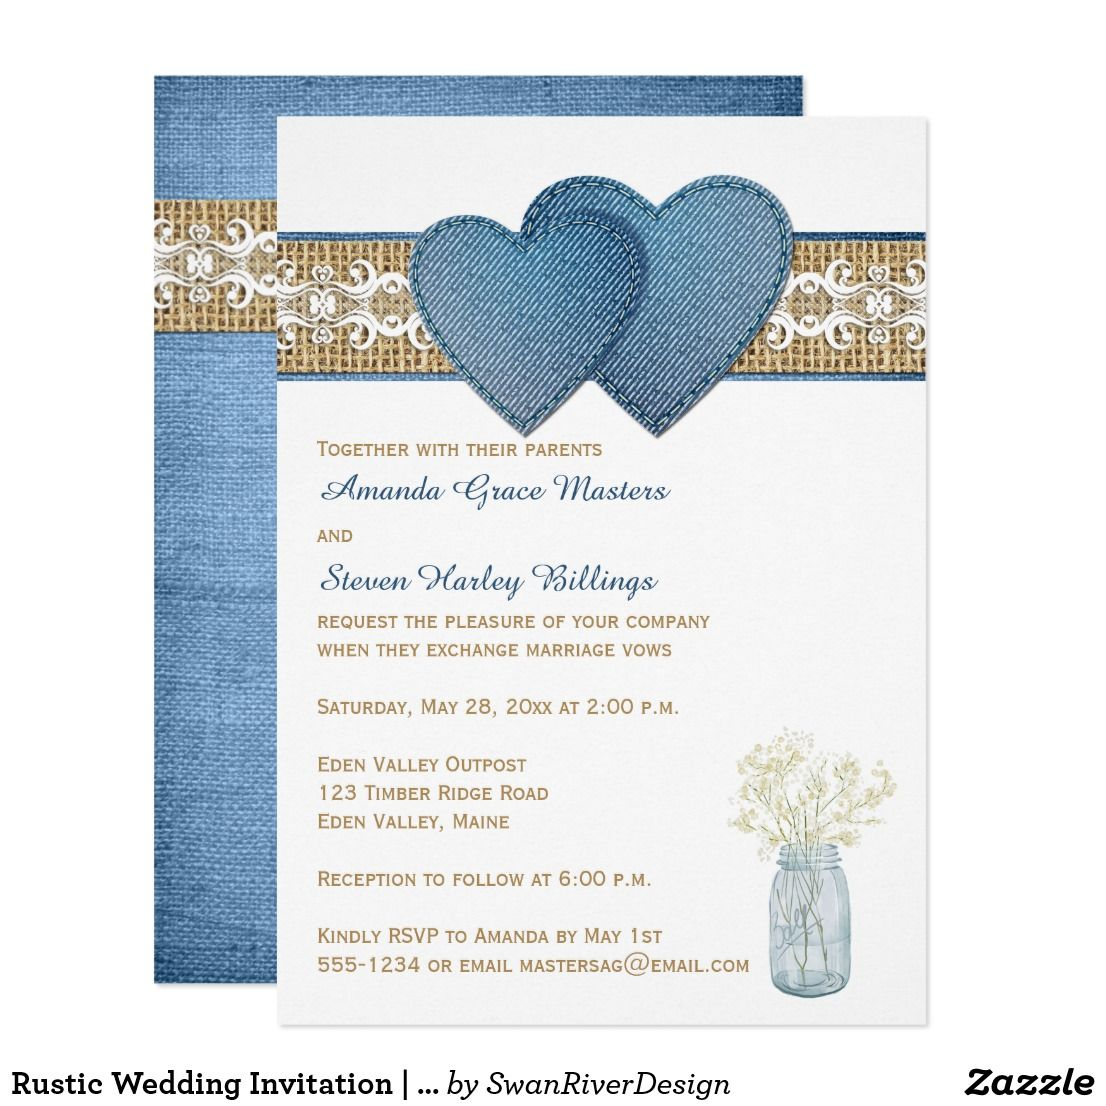 Rustic Wedding Invitation Denim Lace Burlap Wedding Burlap